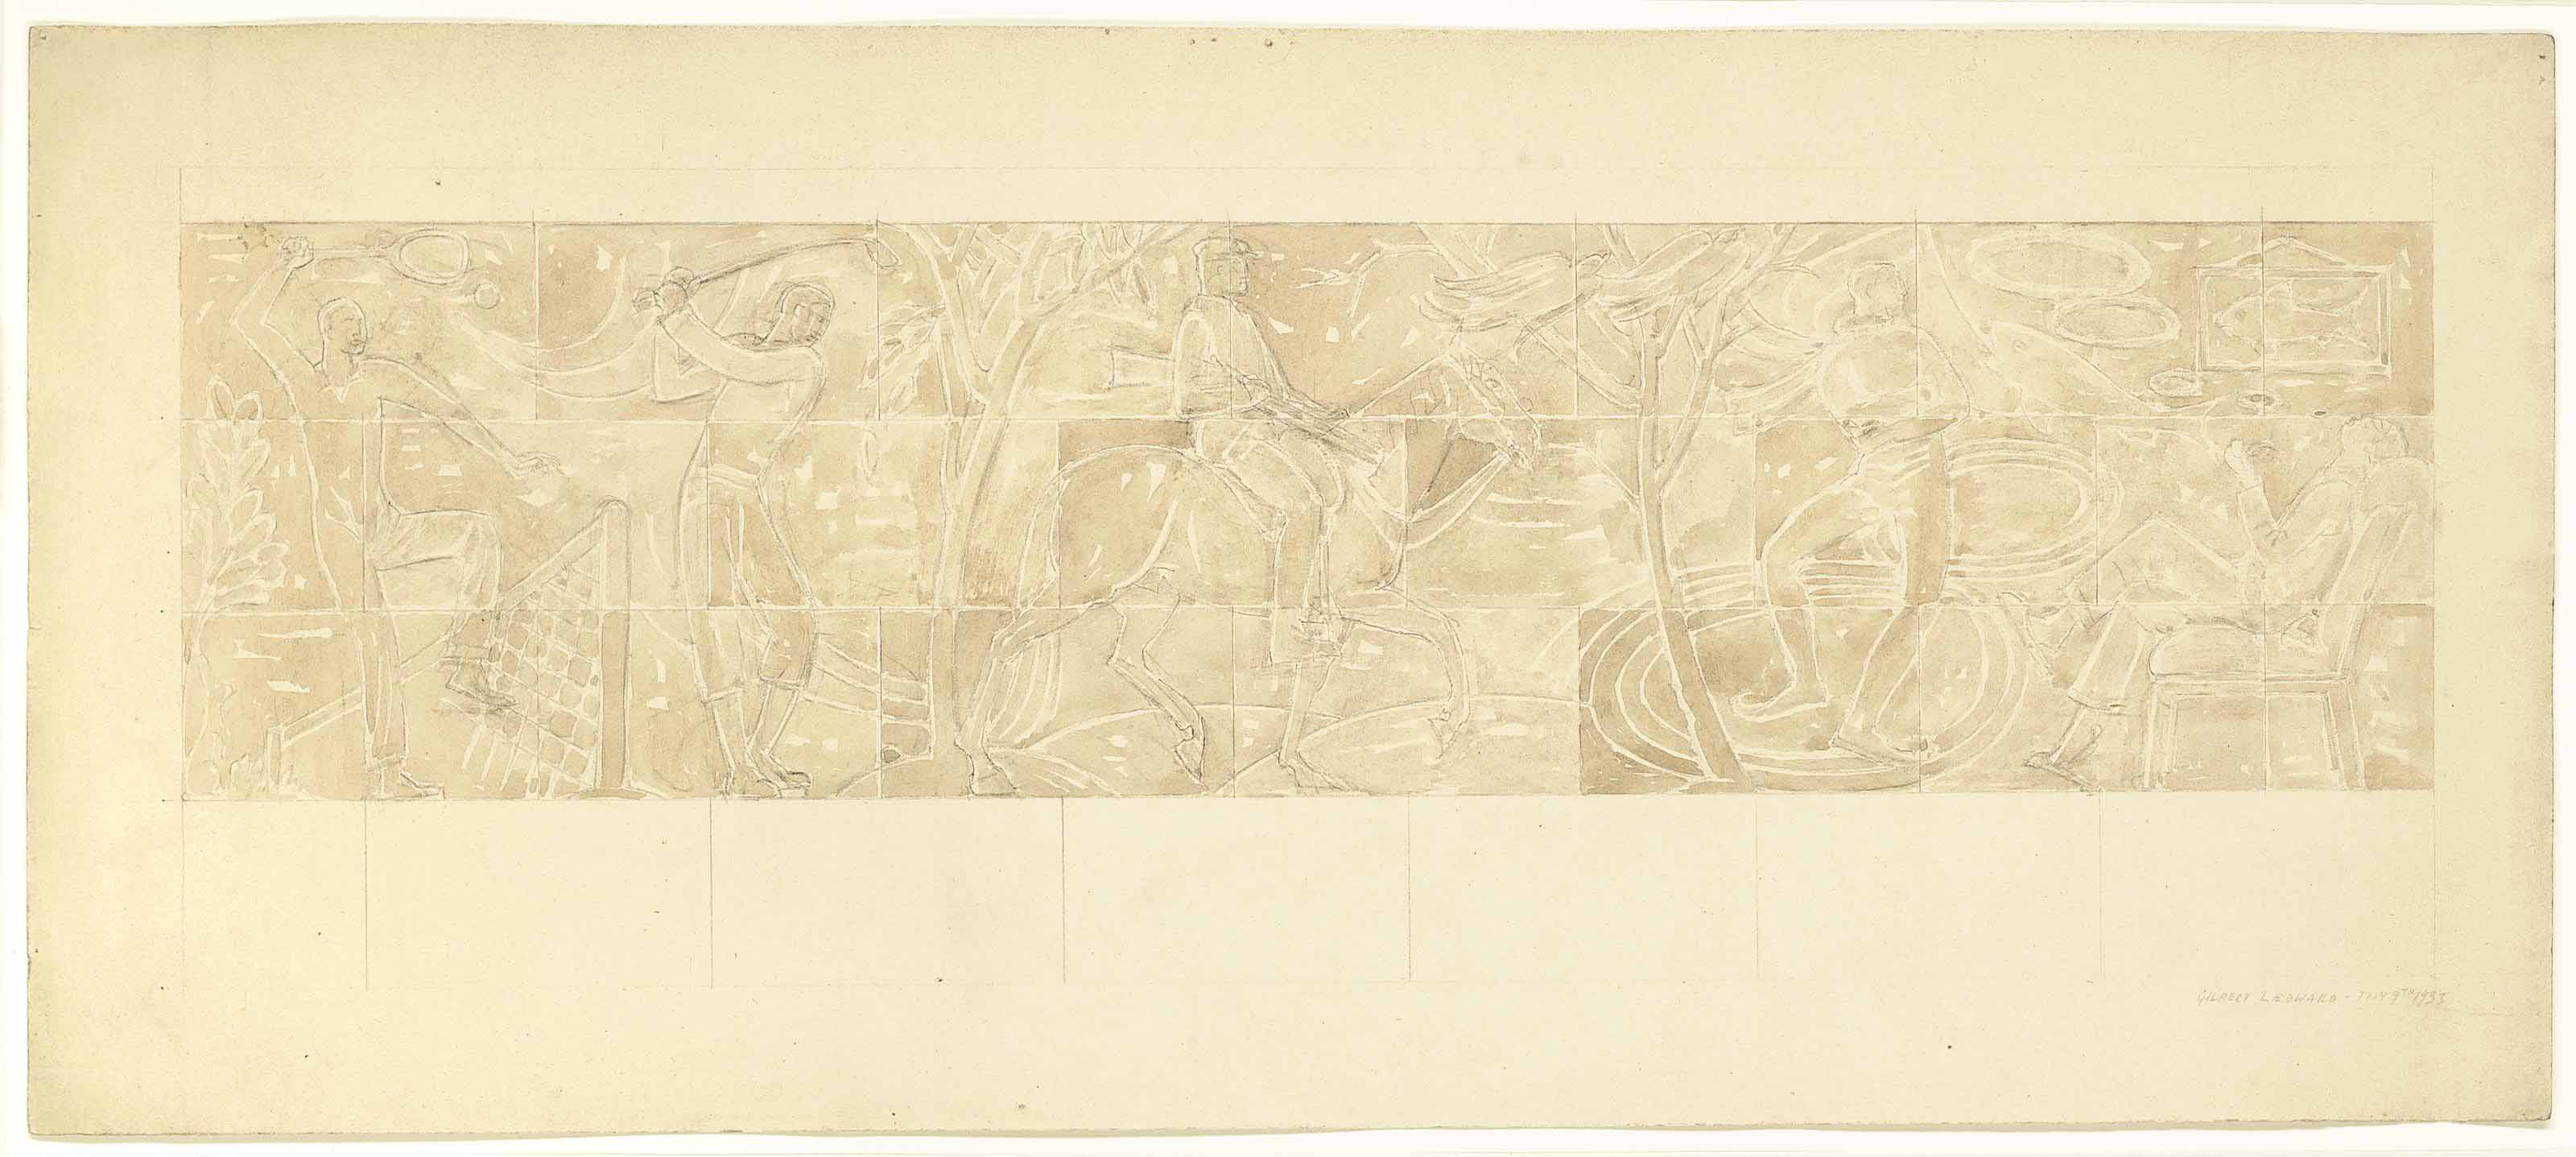 Tennis, Golf, Shooting, Ice-Skating, Dreaming - proposed design for decorative frieze in the Italian drawing room at Eltham Palace, commissioned by Stephen Courtauld